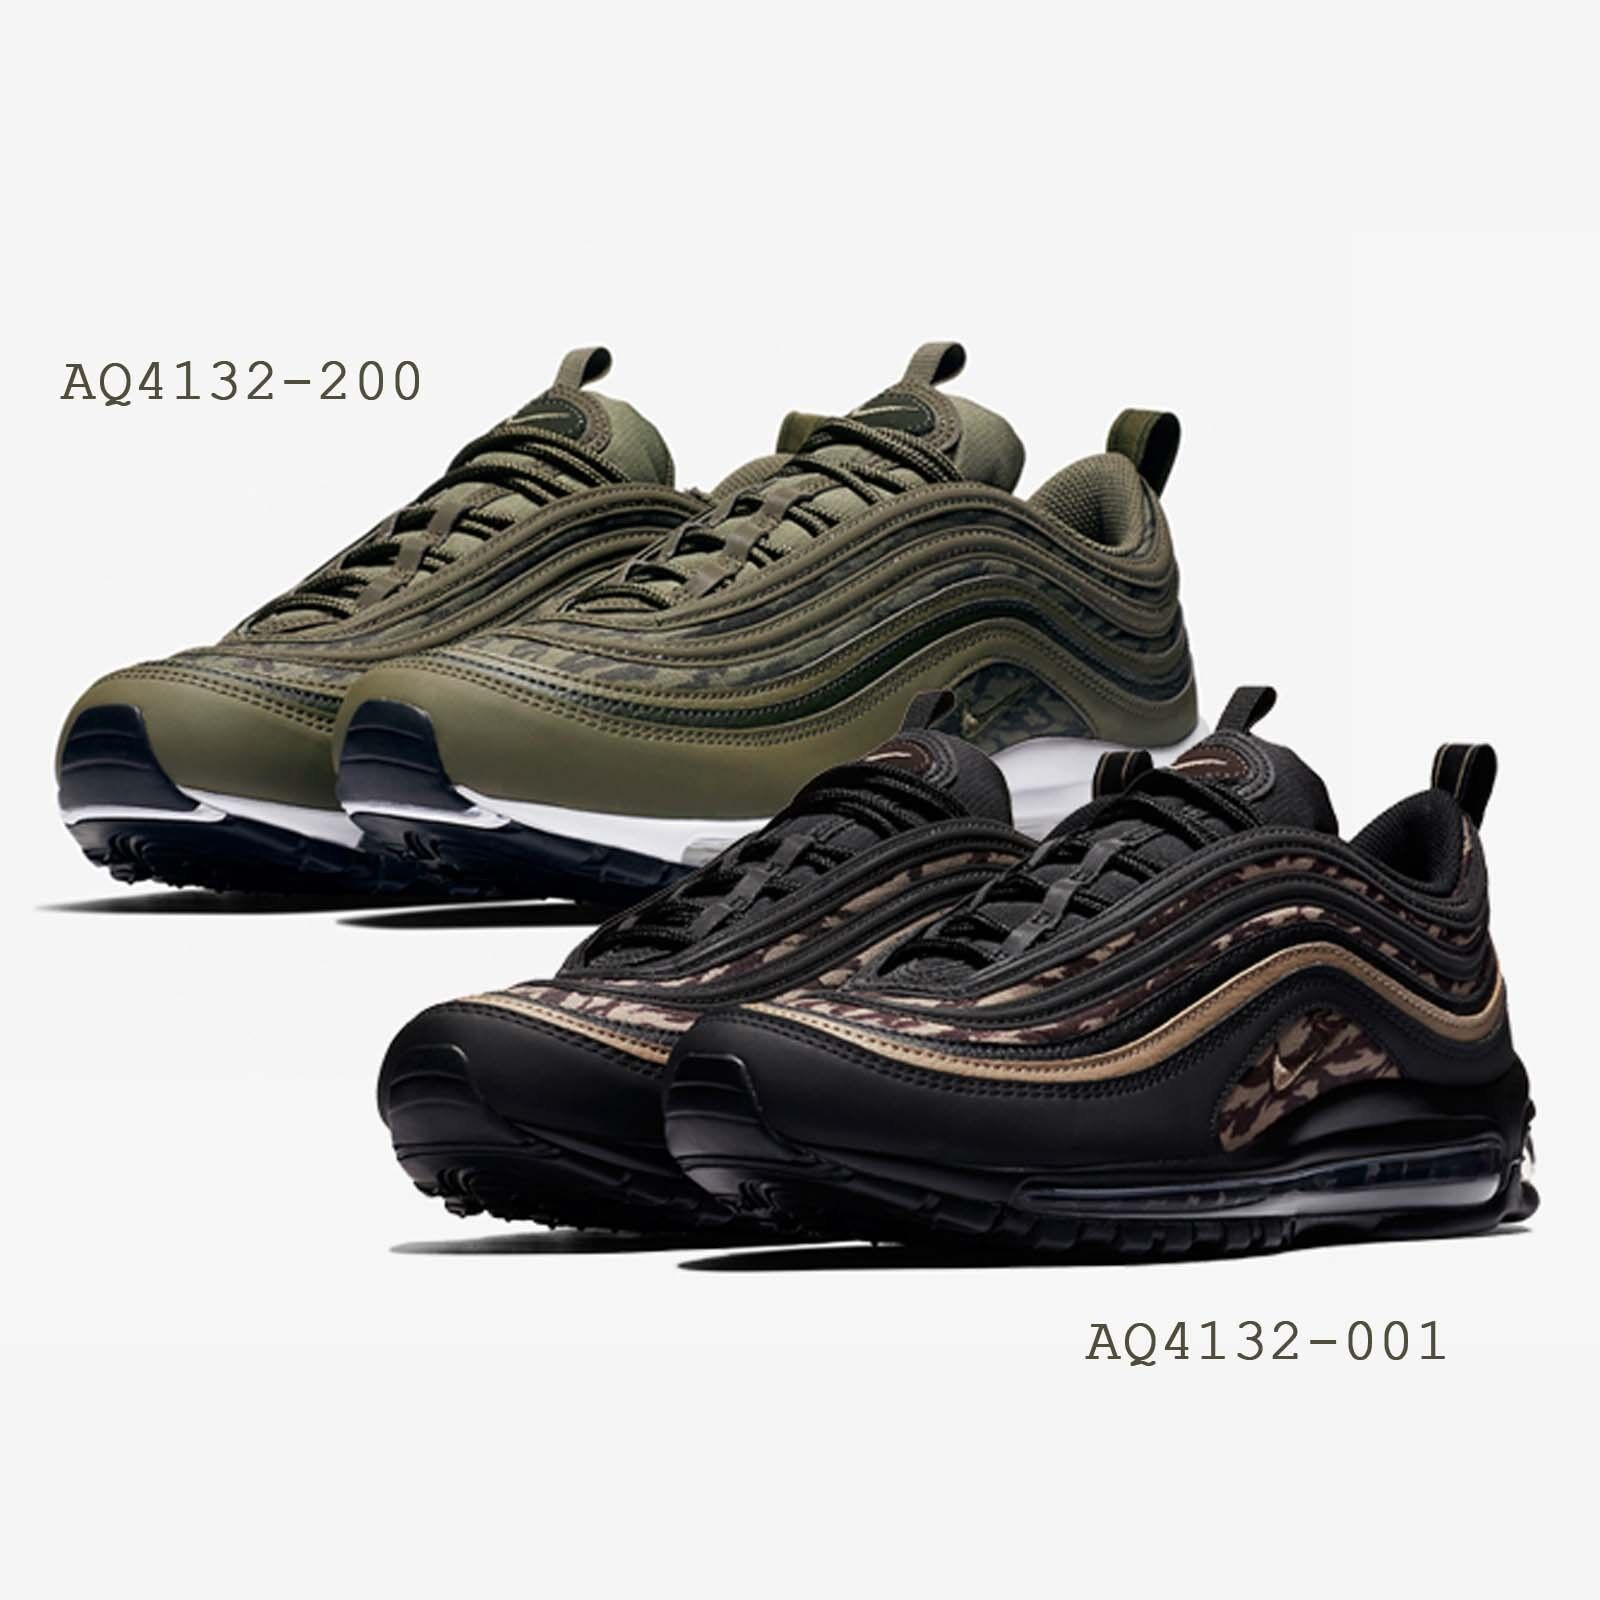 Der nike air max 97 aop - running green / schwarz tiger camo running - schuhe holen 1 mens 683a10